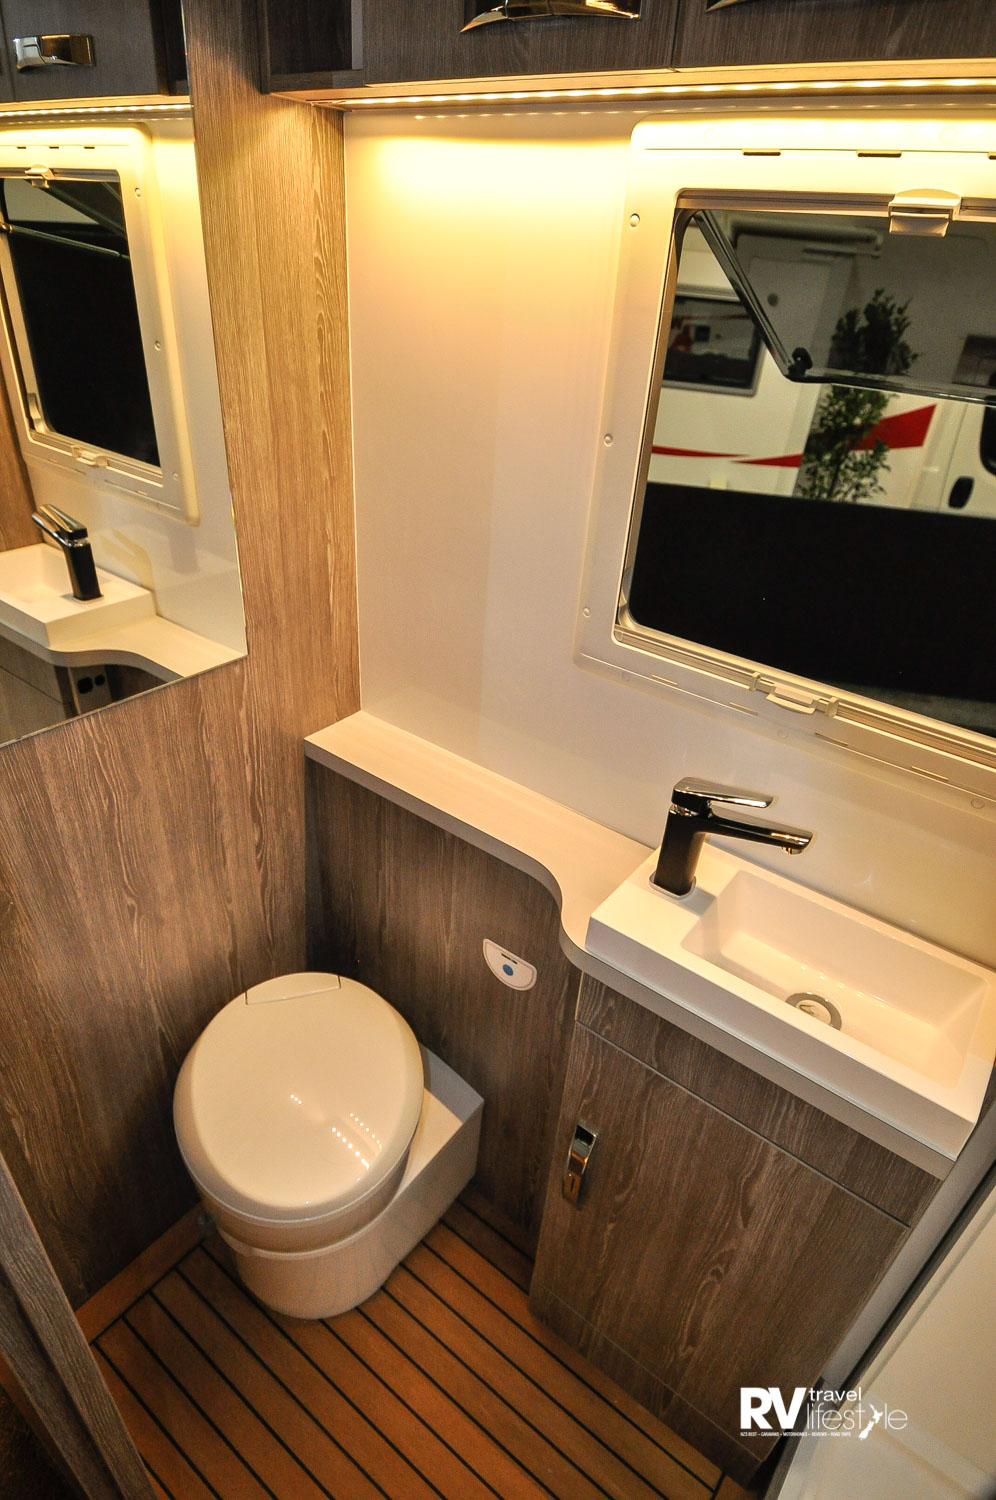 A Thetford 20L electric flush pedestal toilet sits to the left of the shower unit, a window for ventilation and light, vanity sink, shelf and un-der cupboard storage, as well as overhead locker storage – again love that teak floor